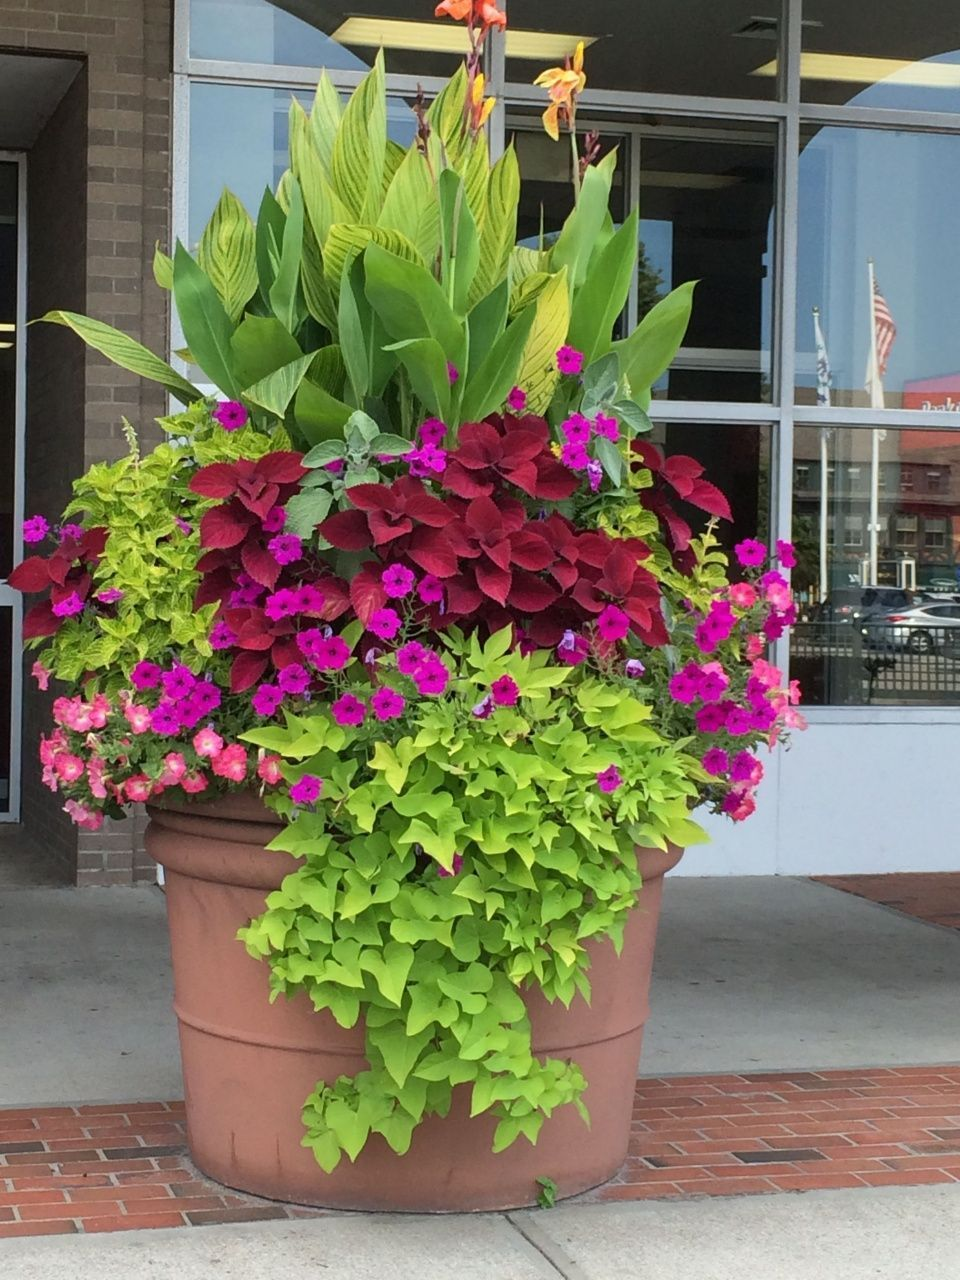 Patio Plants In Pots Ideas This Is A Really Big Pot But This Could Be Done On A Big Conta Flower Pots Outdoor Container Gardening Flowers Container Flowers